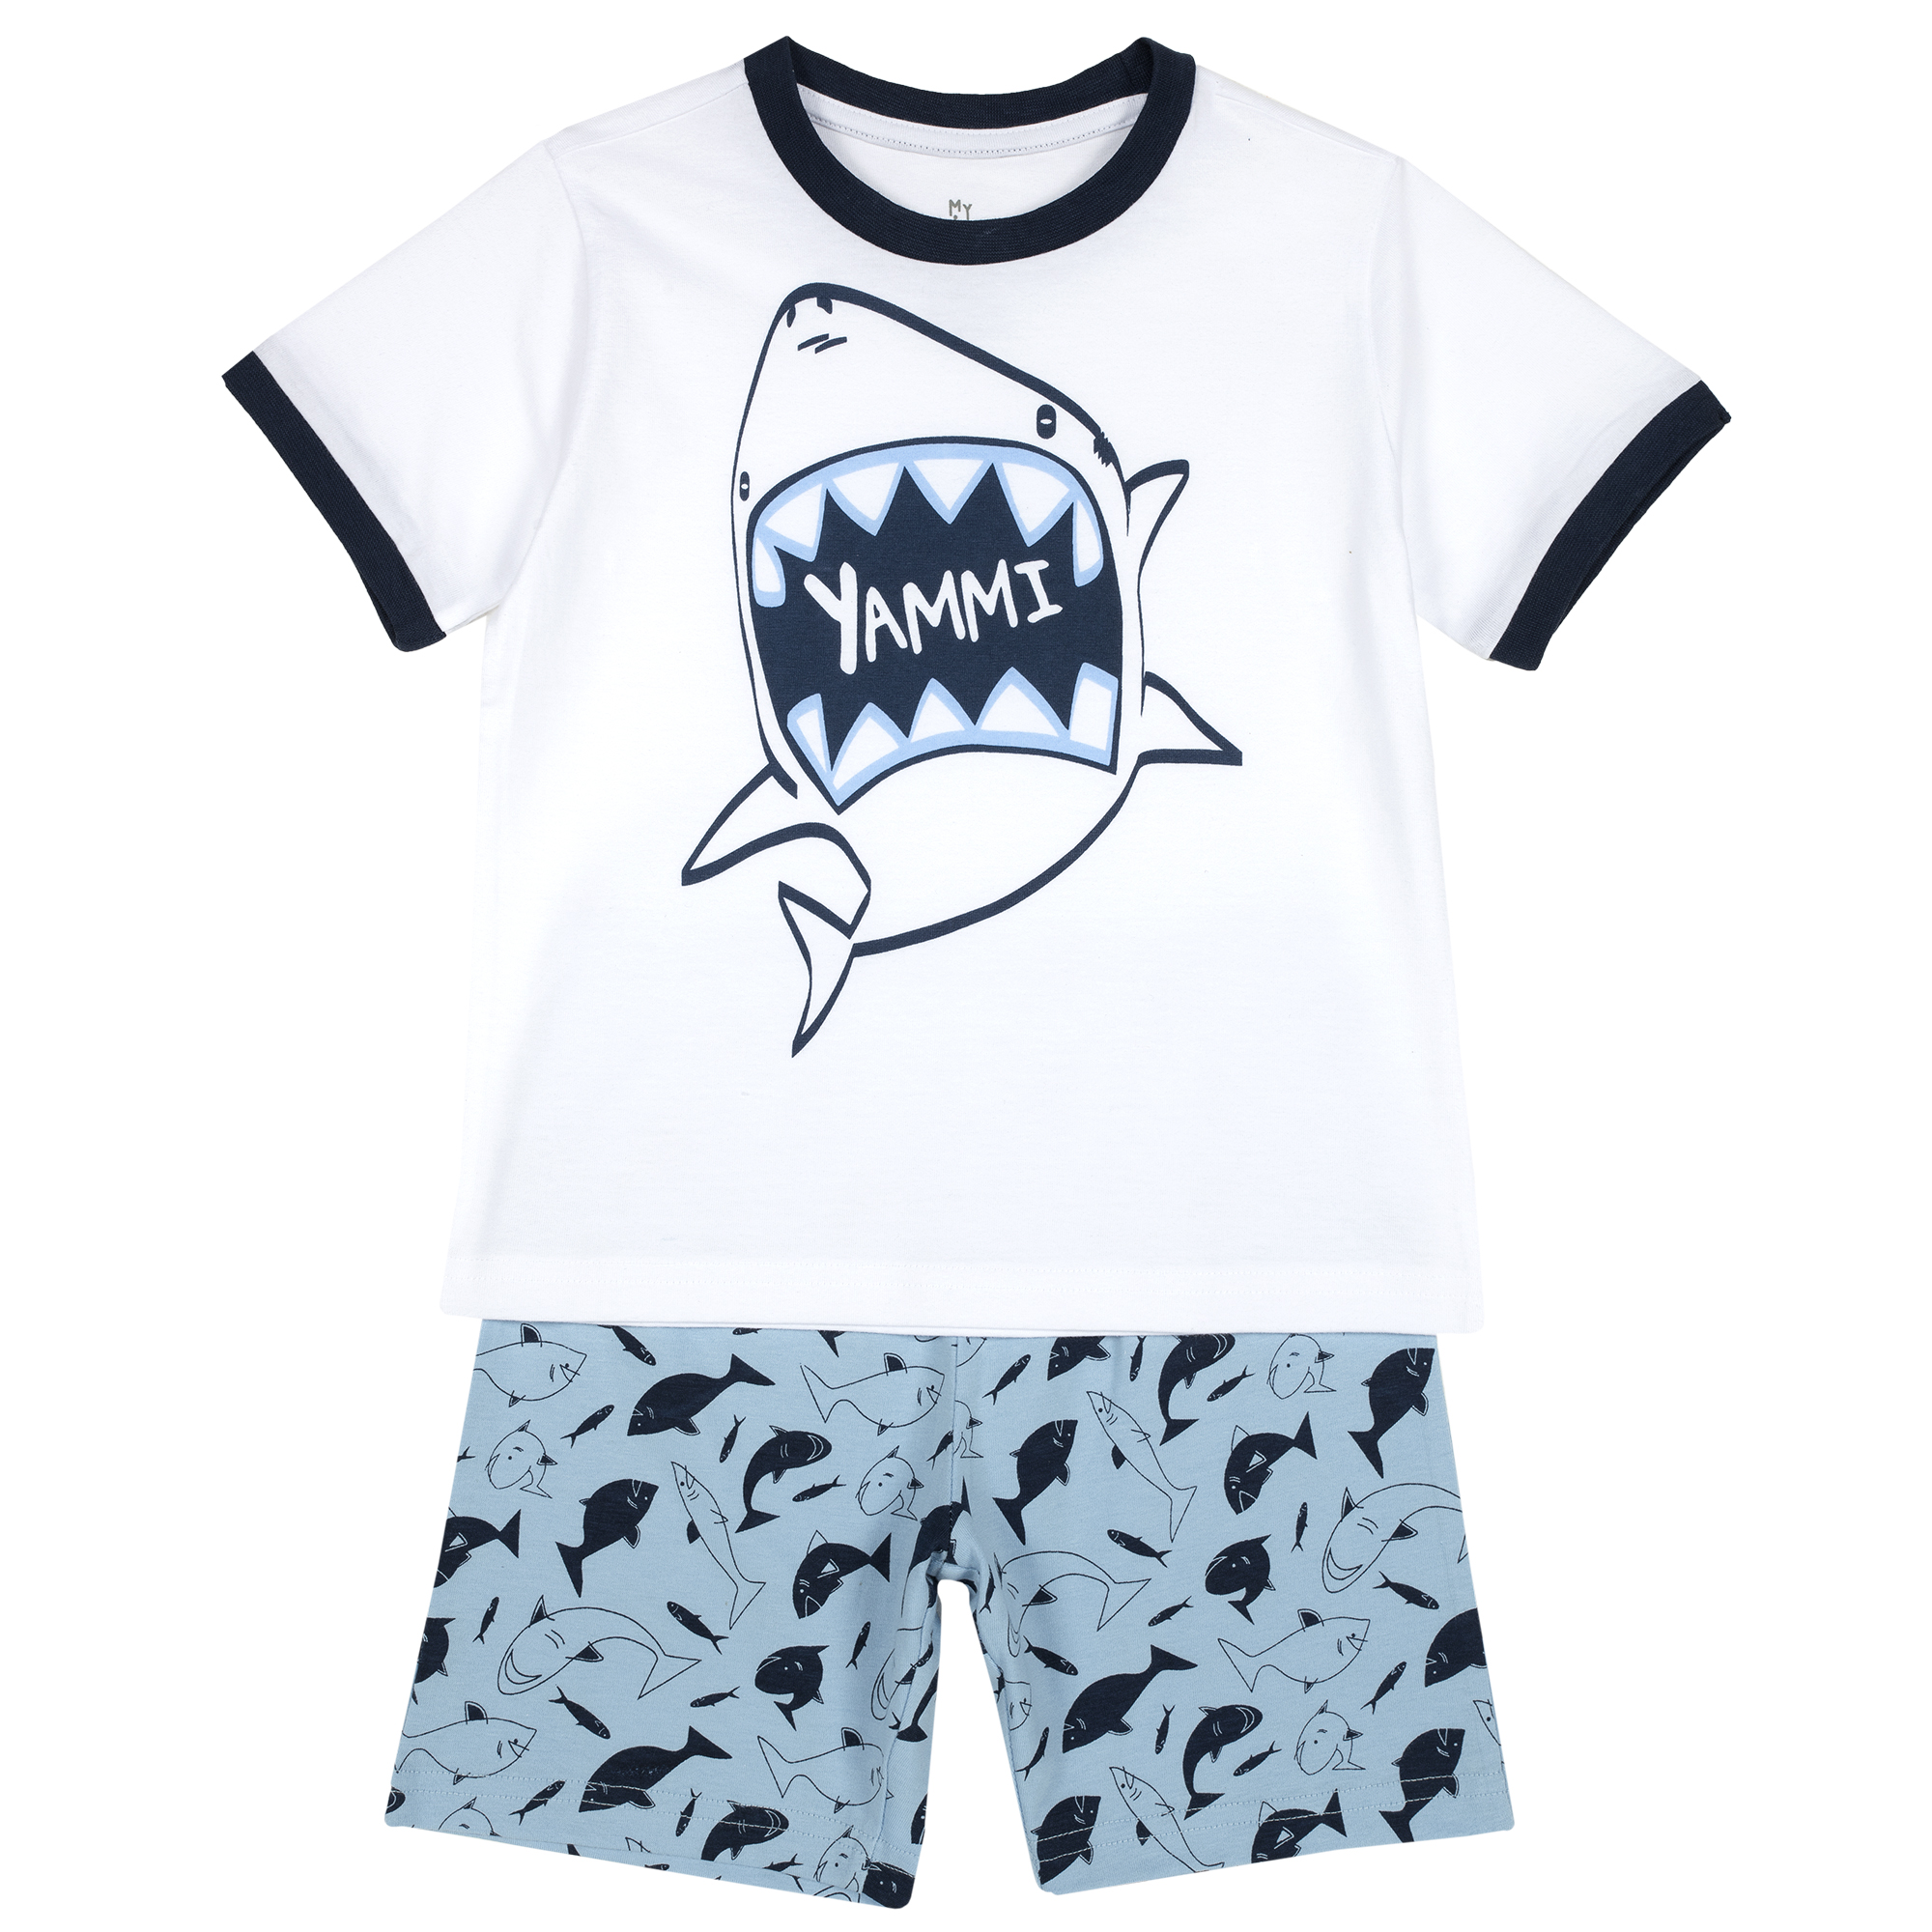 Pijama copii Chicco, maneca scurta, turcoaz, 35363 din categoria Pijamale copii